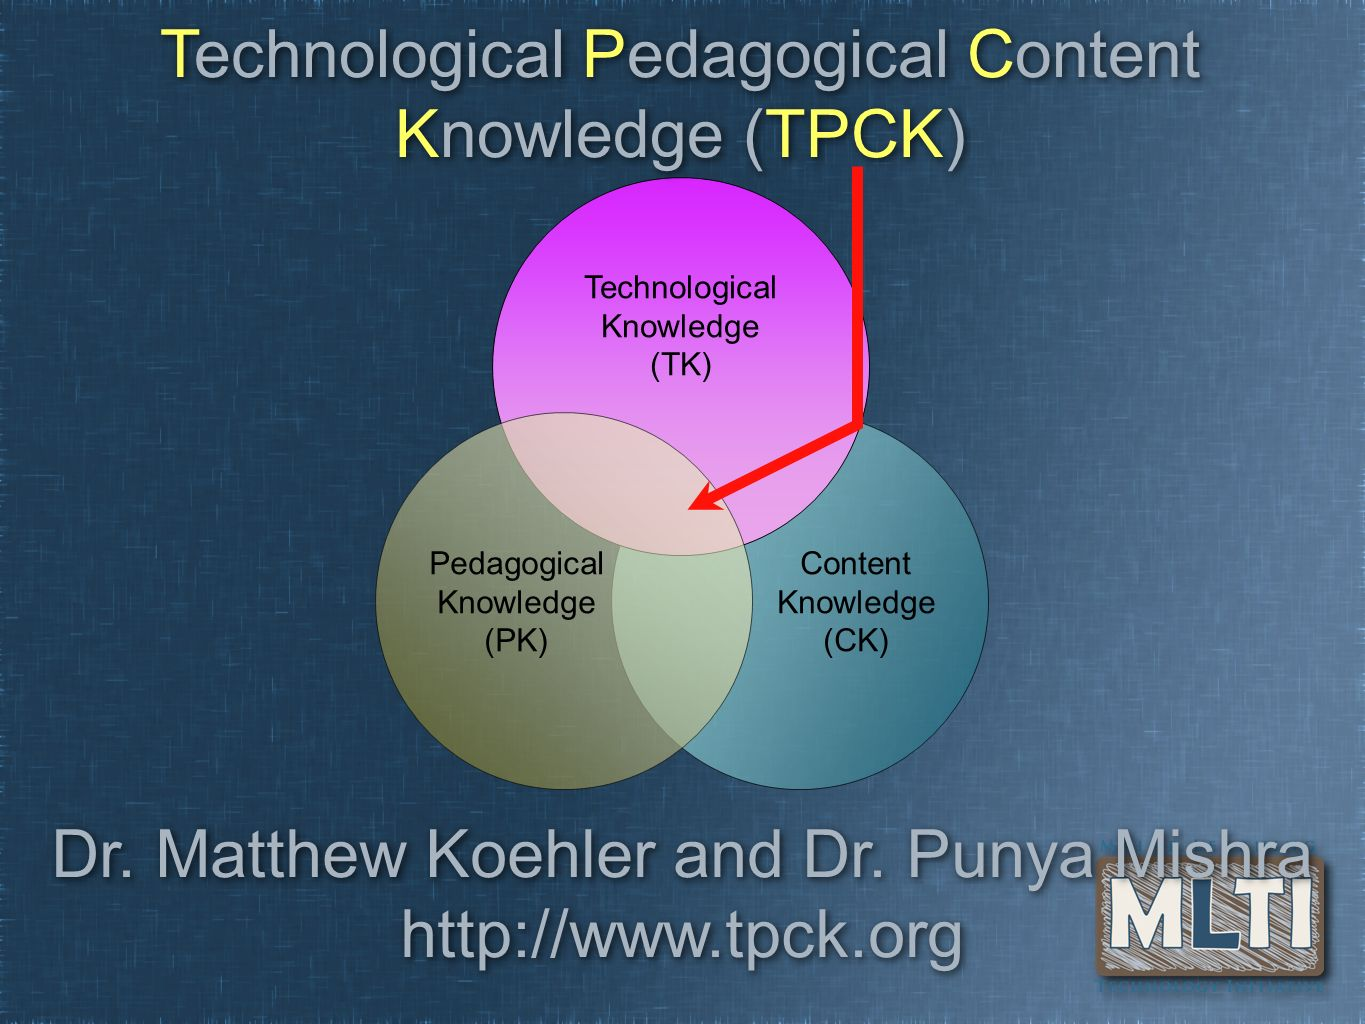 Content Knowledge (CK) Dr. Matthew Koehler and Dr. Punya Mishra http://www.tpck.org Technological Knowledge (TK) Pedagogical Knowledge (PK) Technologi